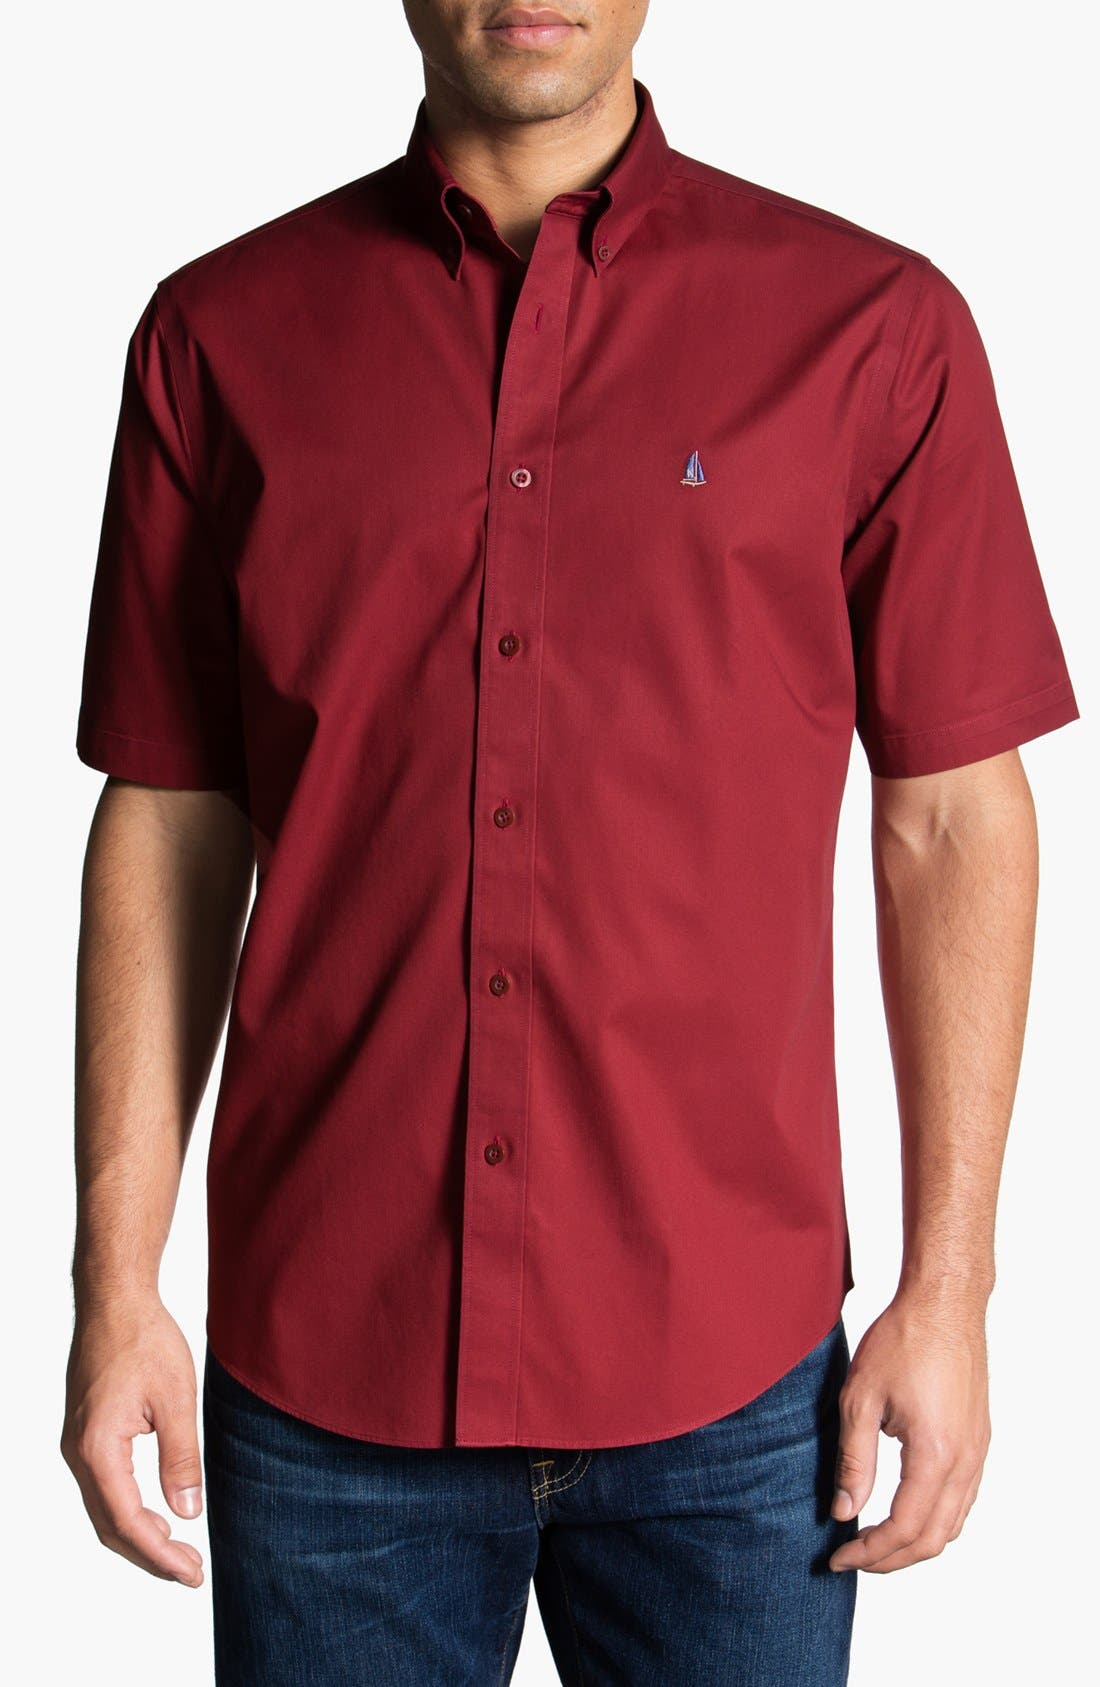 Main Image - Nordstrom Smartcare™ Traditional Fit Short Sleeve Twill Boat Shirt